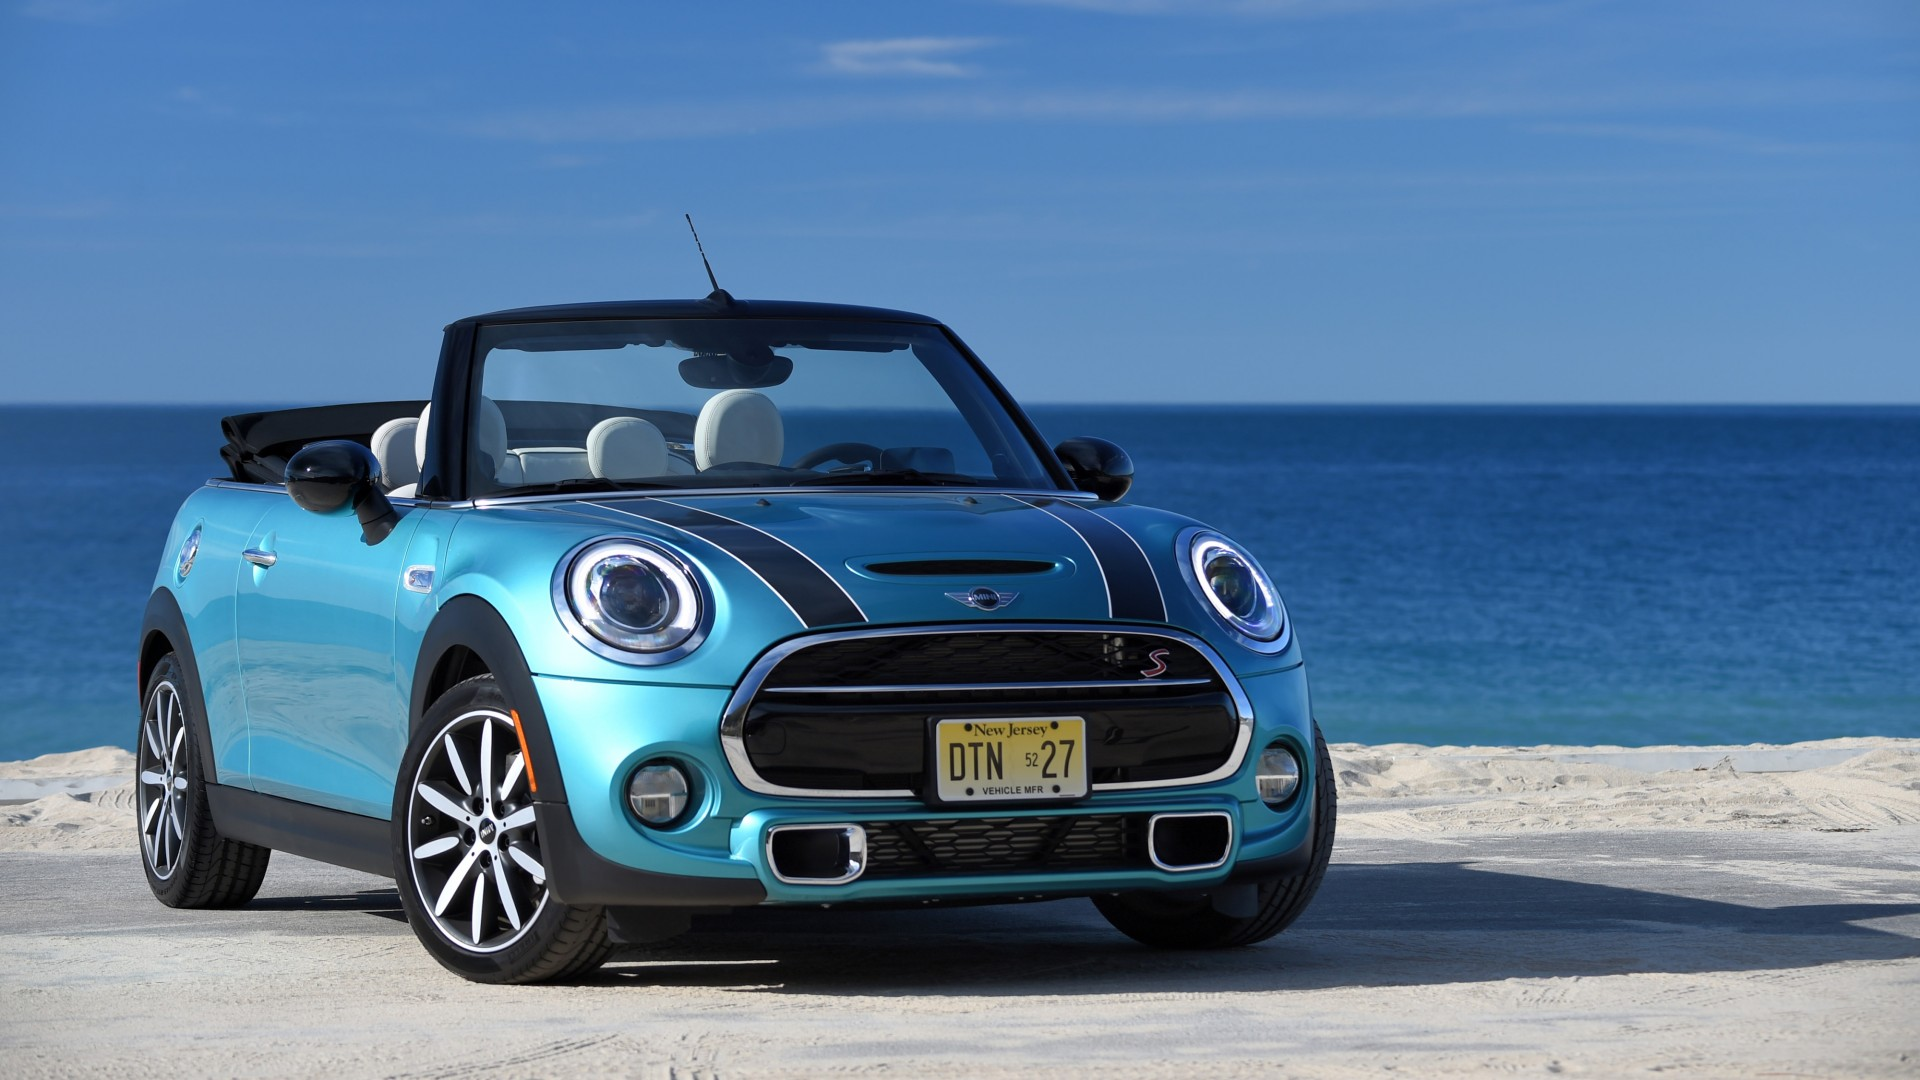 2016 Mini Cooper Convertible Wallpaper HD Car Wallpapers 1920x1080